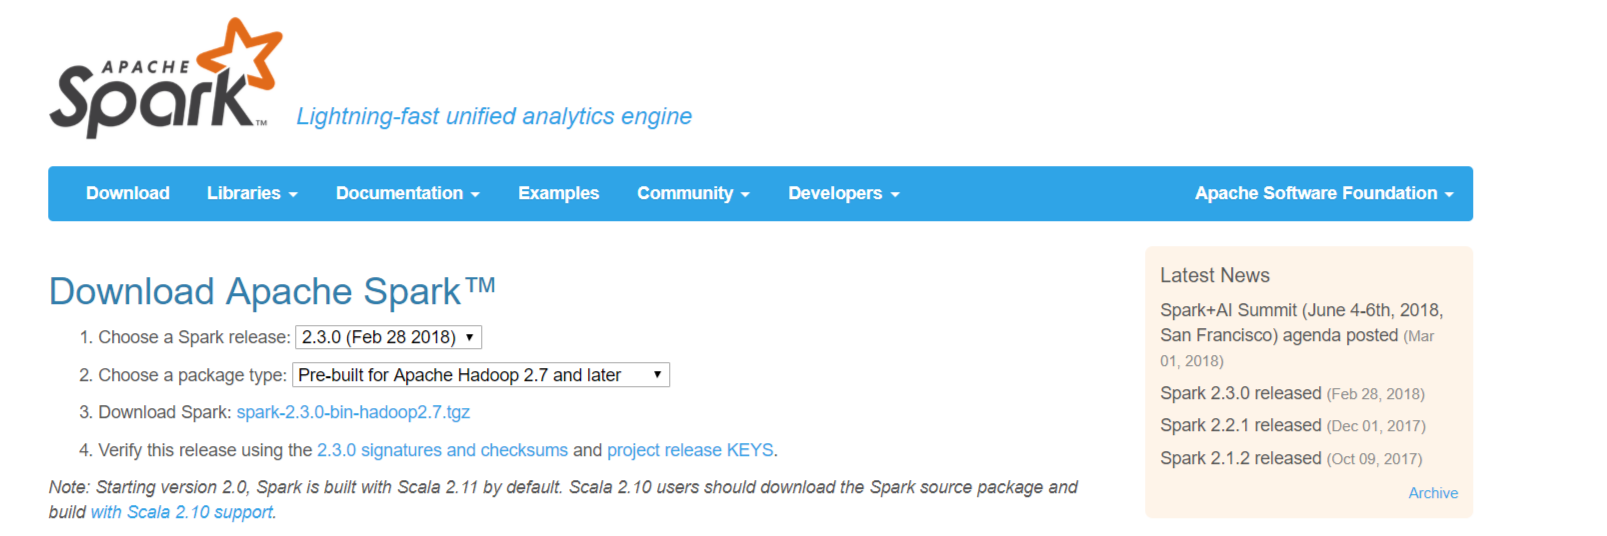 image from Apache Spark on Windows